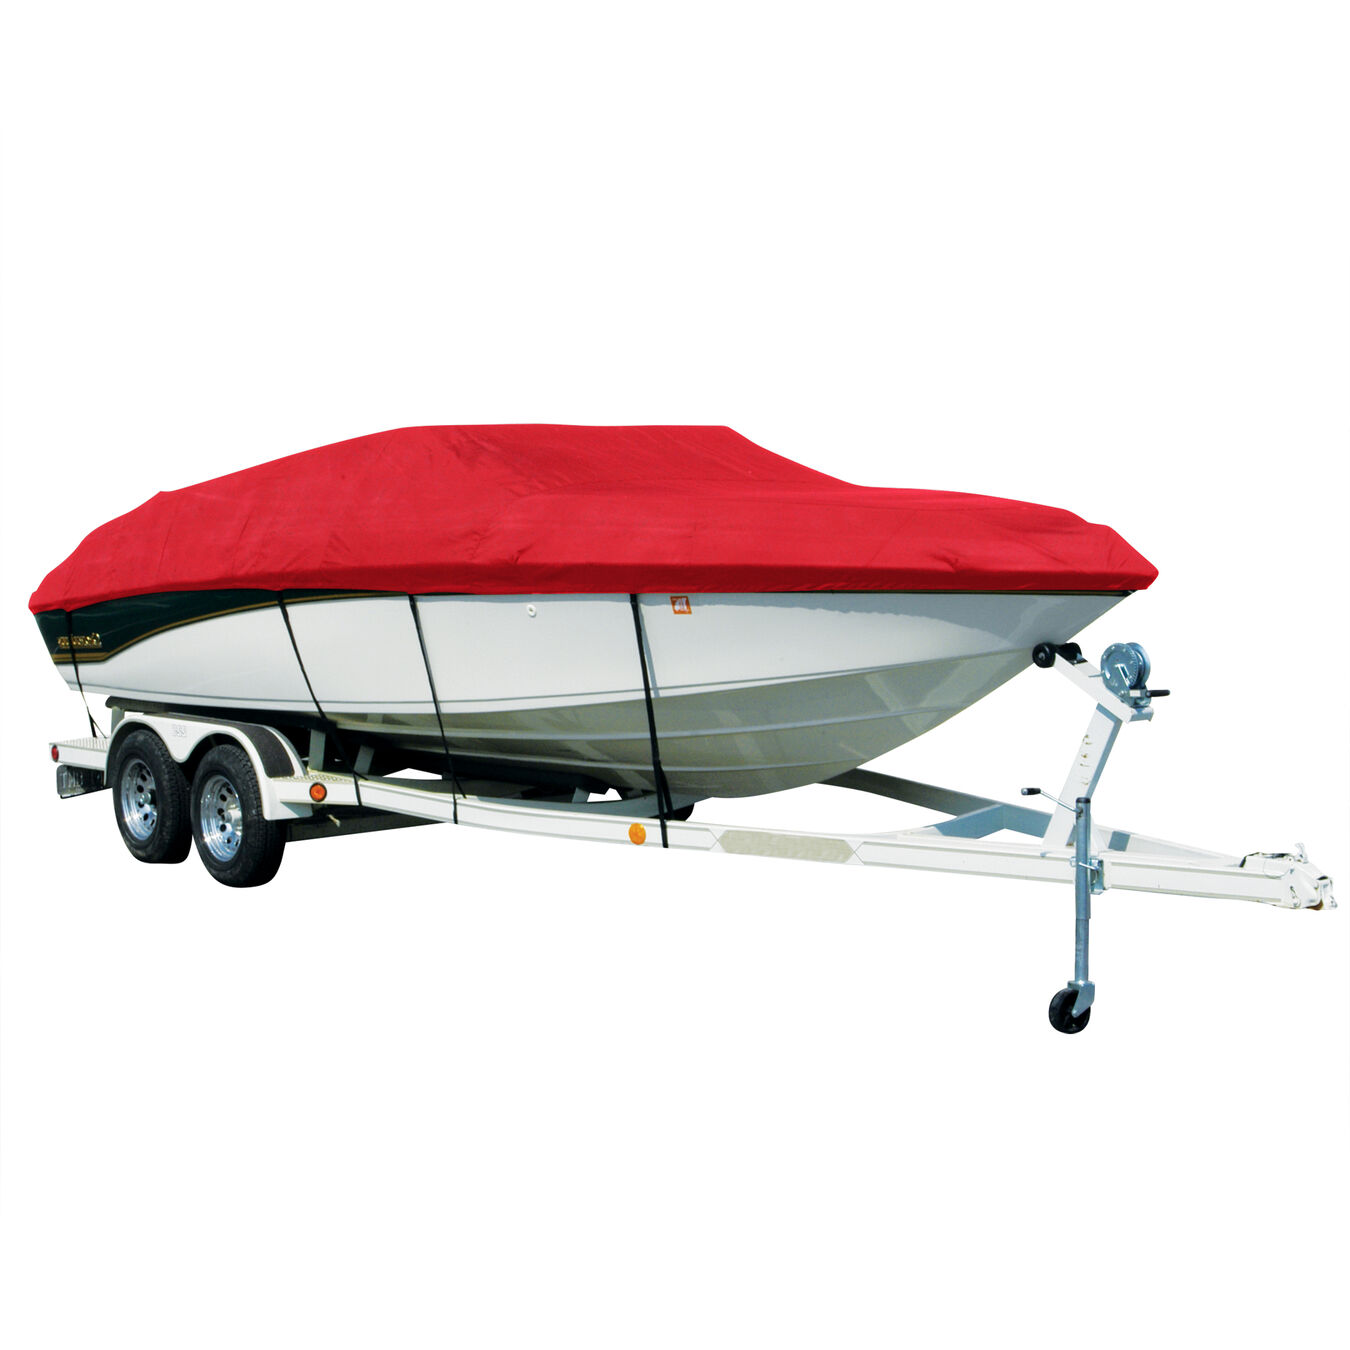 BOAT COVER for SeaSwirl 190 Sport with extended swim platform